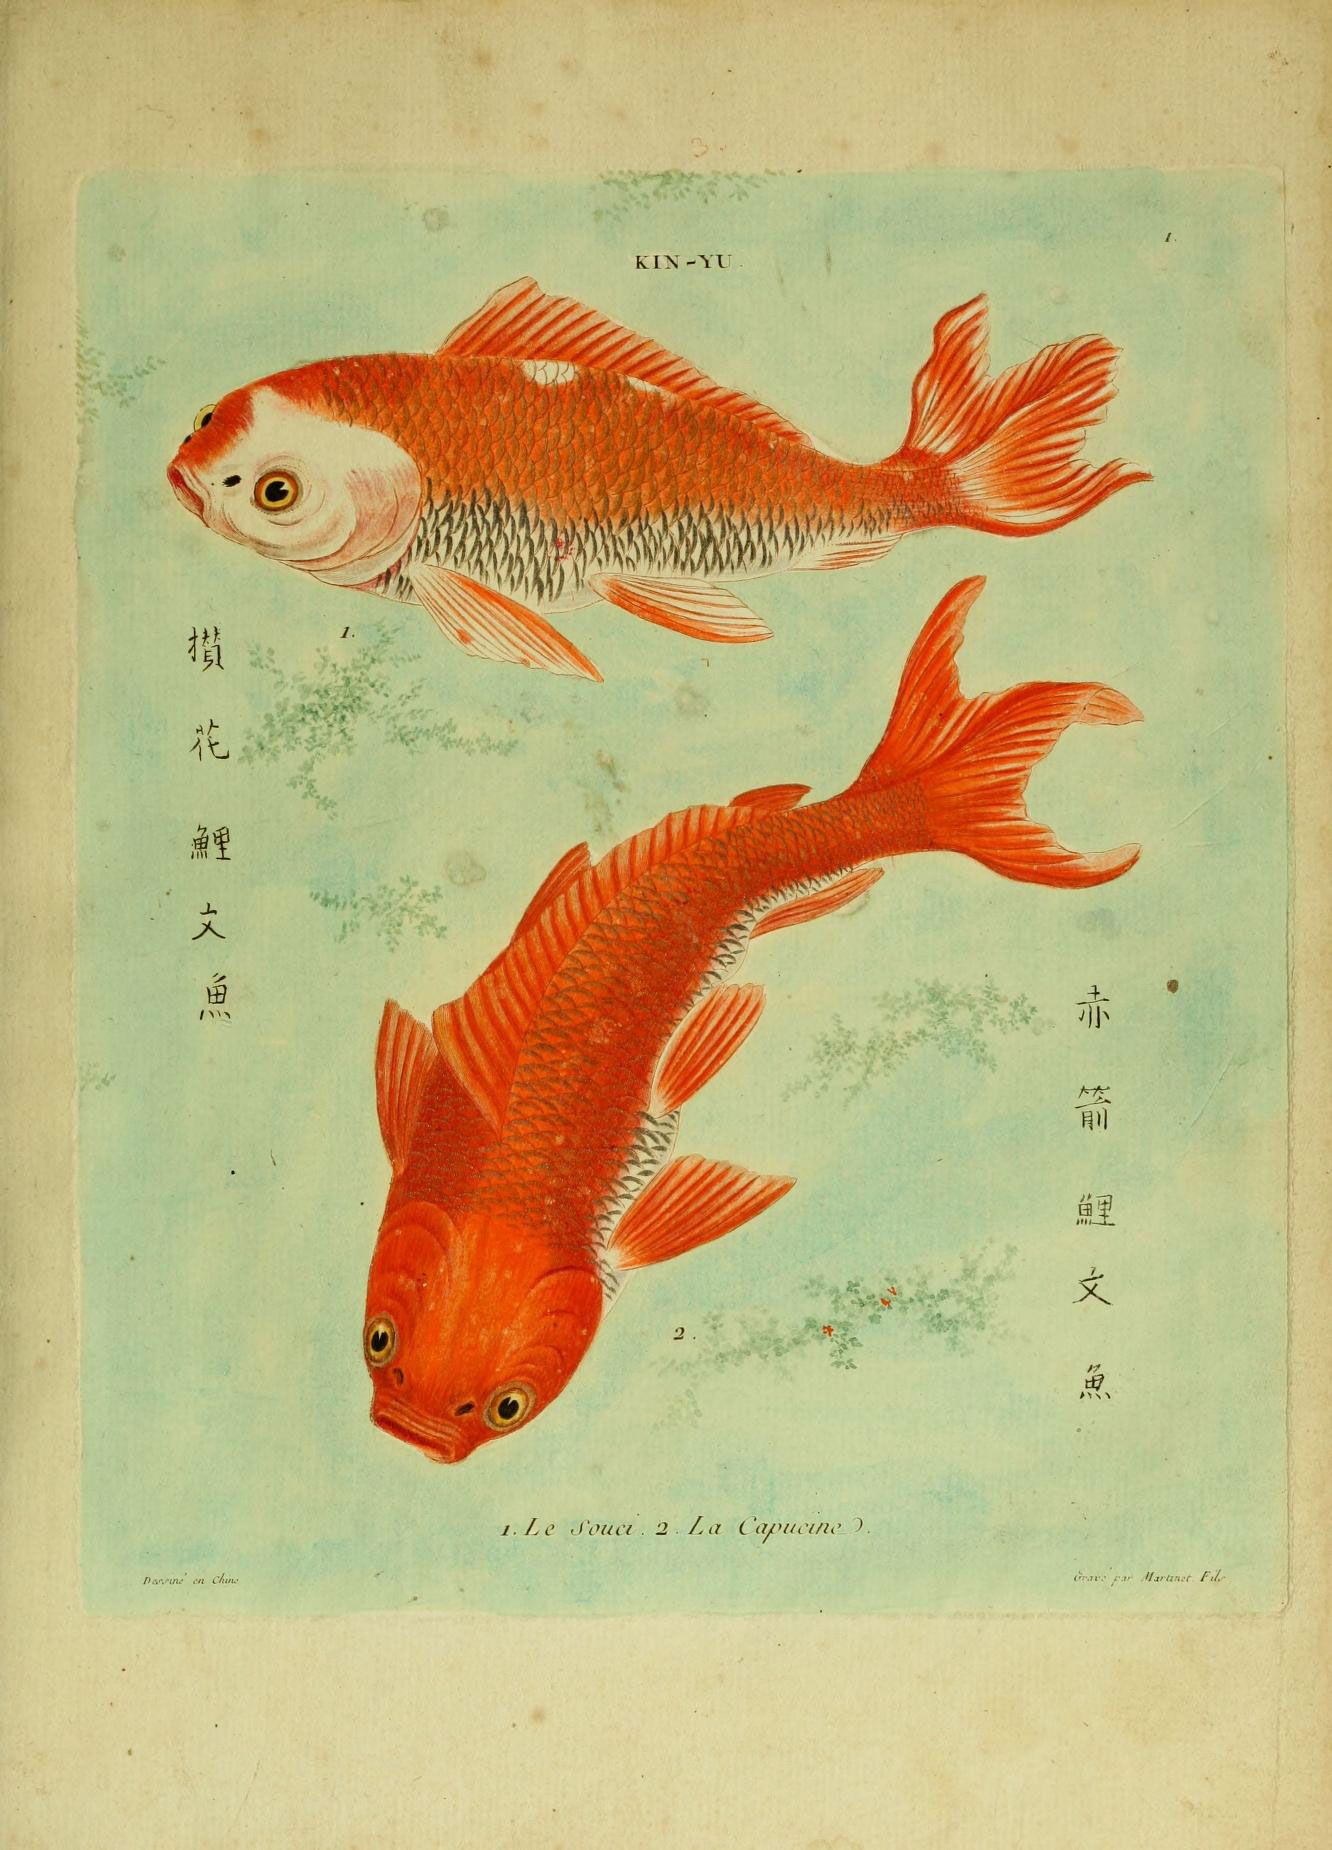 Pin by Nanette Raoelina on Fish | Pinterest | Fish and Illustrations